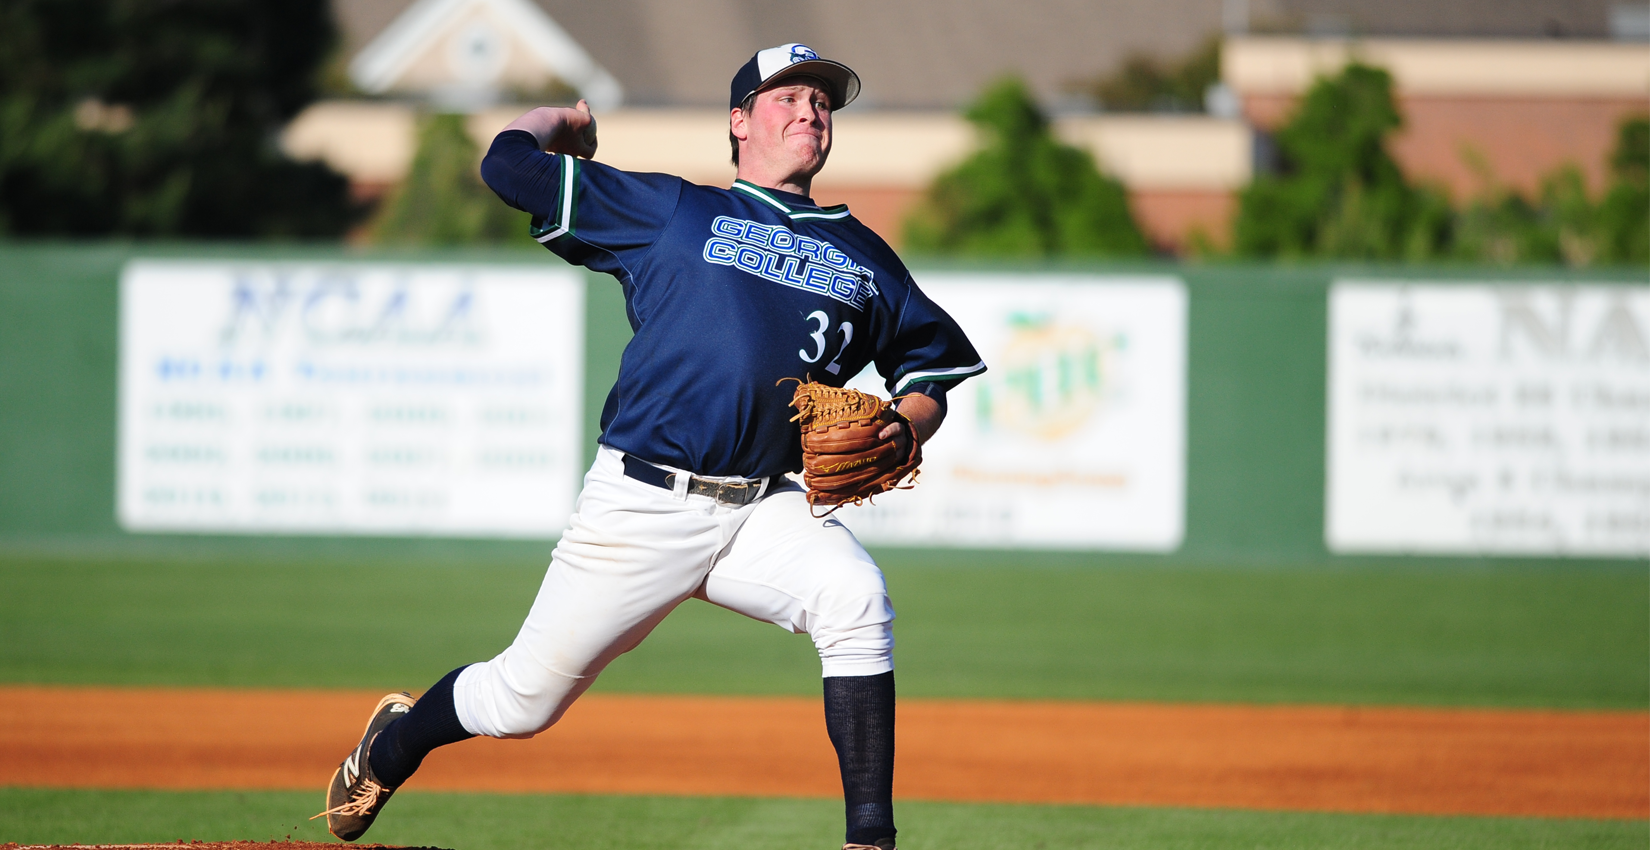 Bobcat Baseball Drops Tough Contest at No. 2 Tampa